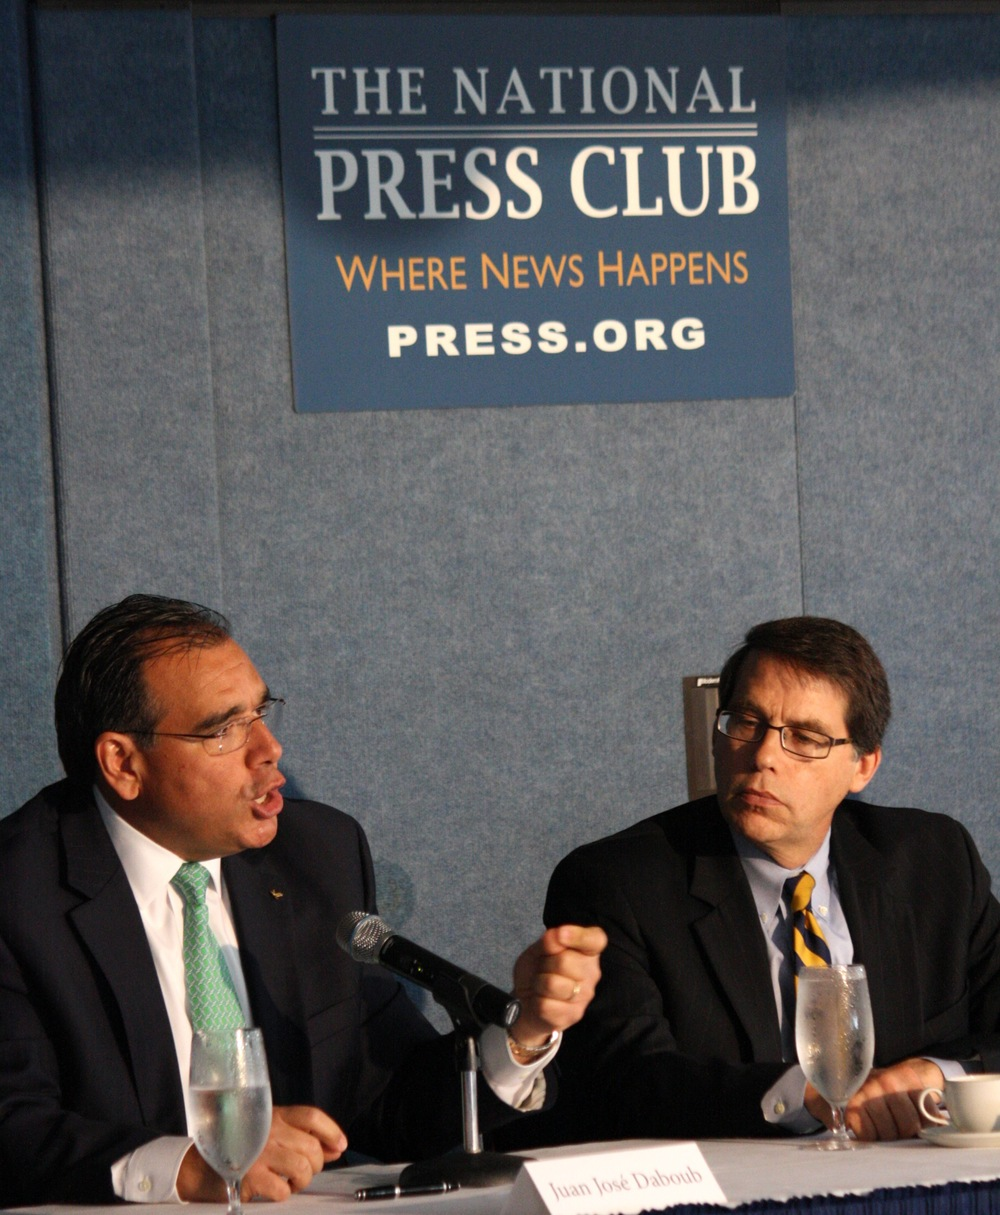 Dr. Juan José Daboub, Founding CEO of the Global Adaptation Institute (GAIN), speaks at the National Press Club during the announcement of the partnership between GAIN and the University of Notre Dame.